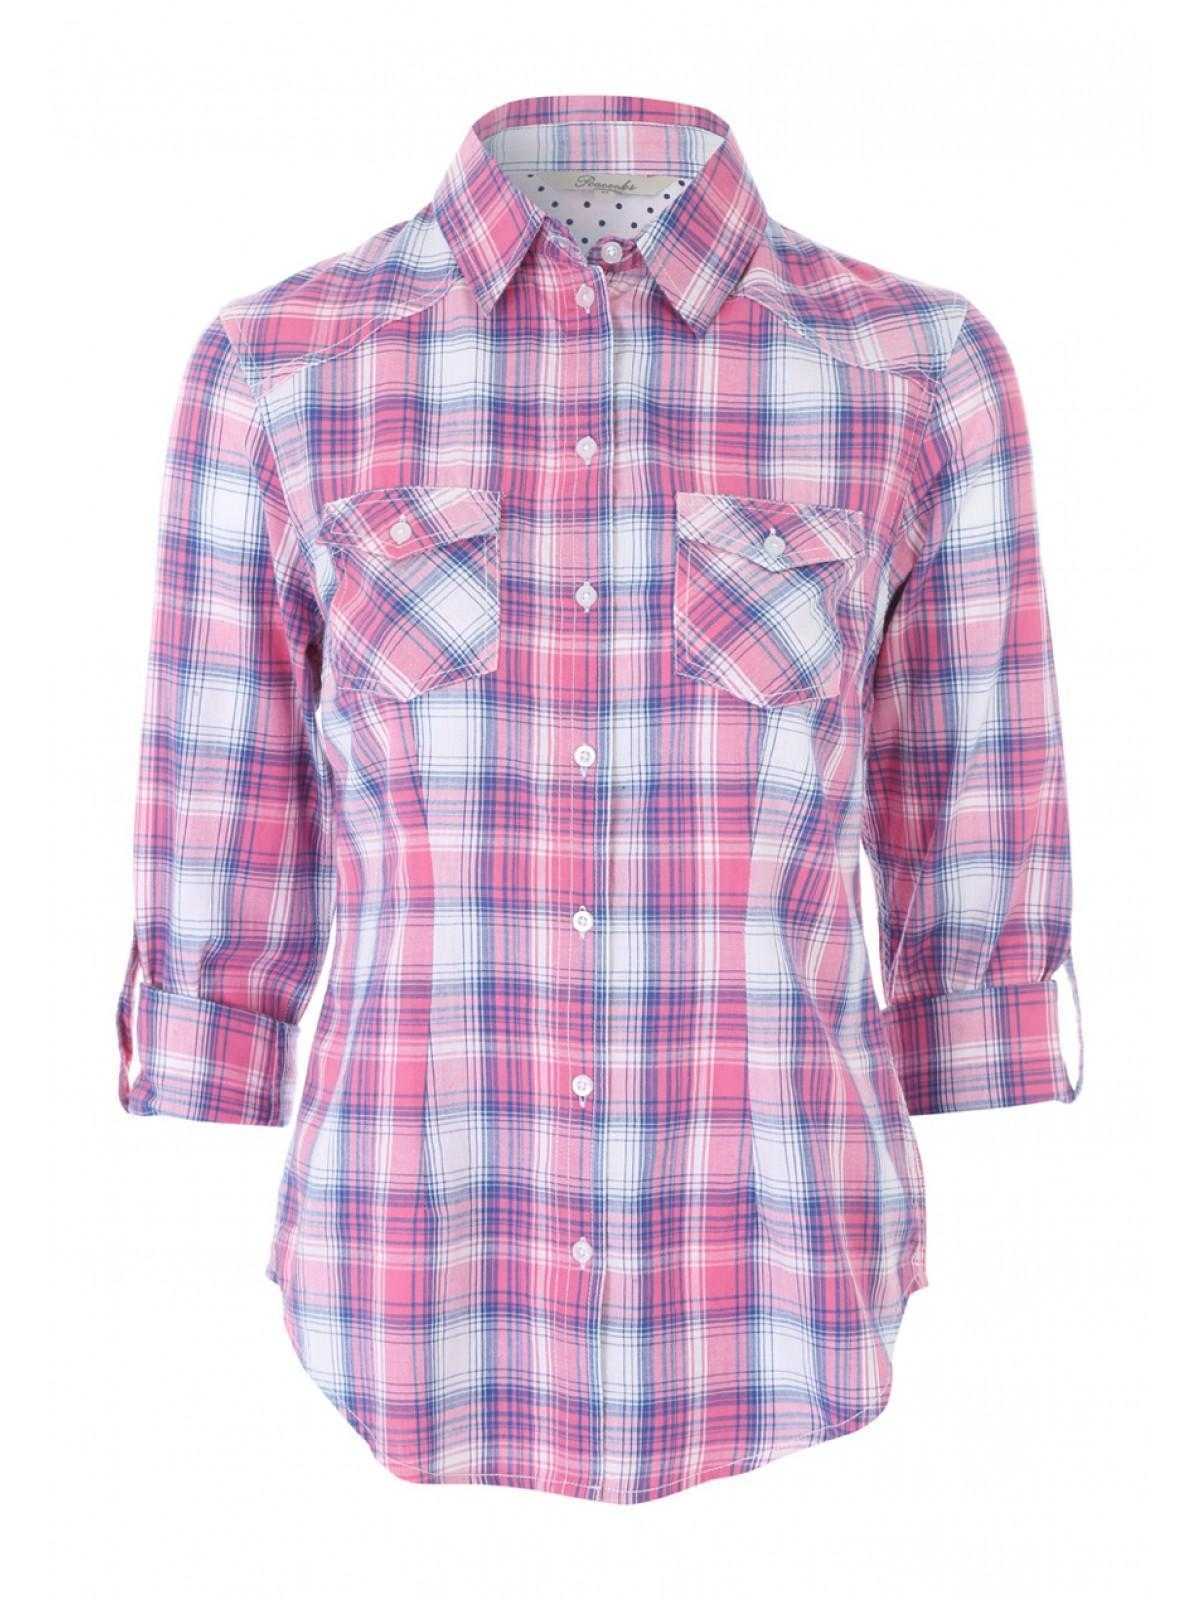 Womens Pink Roll Up Check Shirt | Peacocks